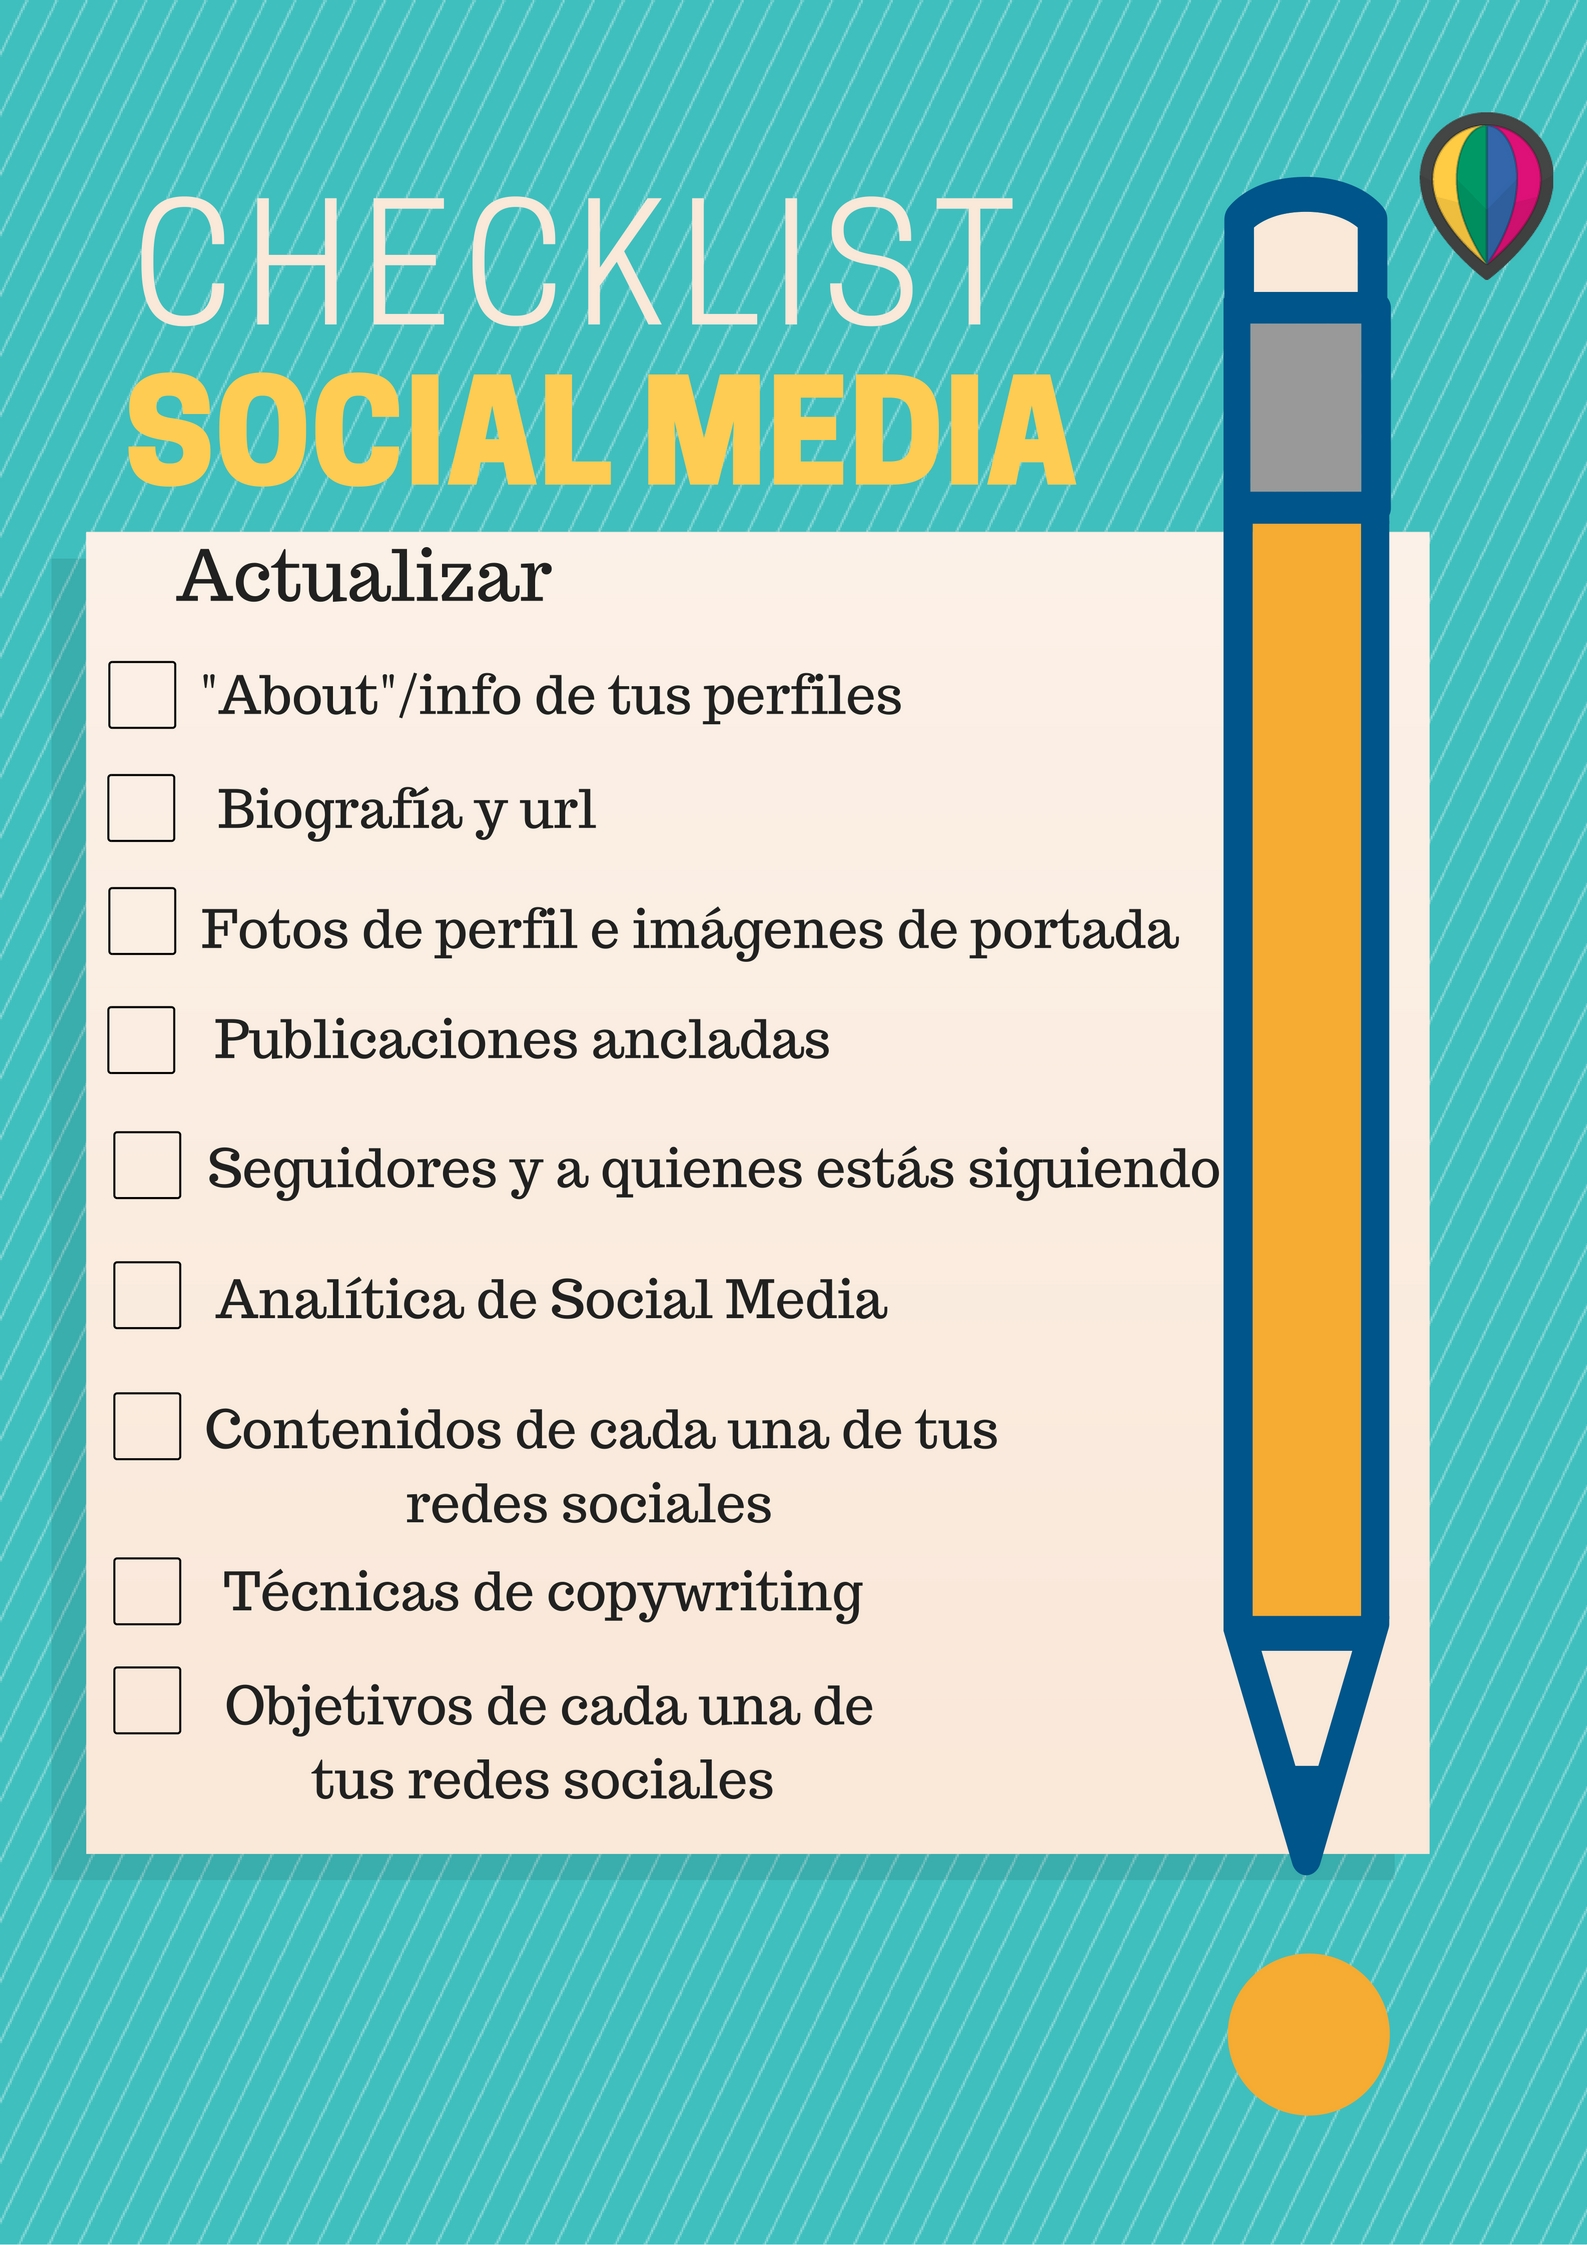 Checklist para renovar plan de marketing social